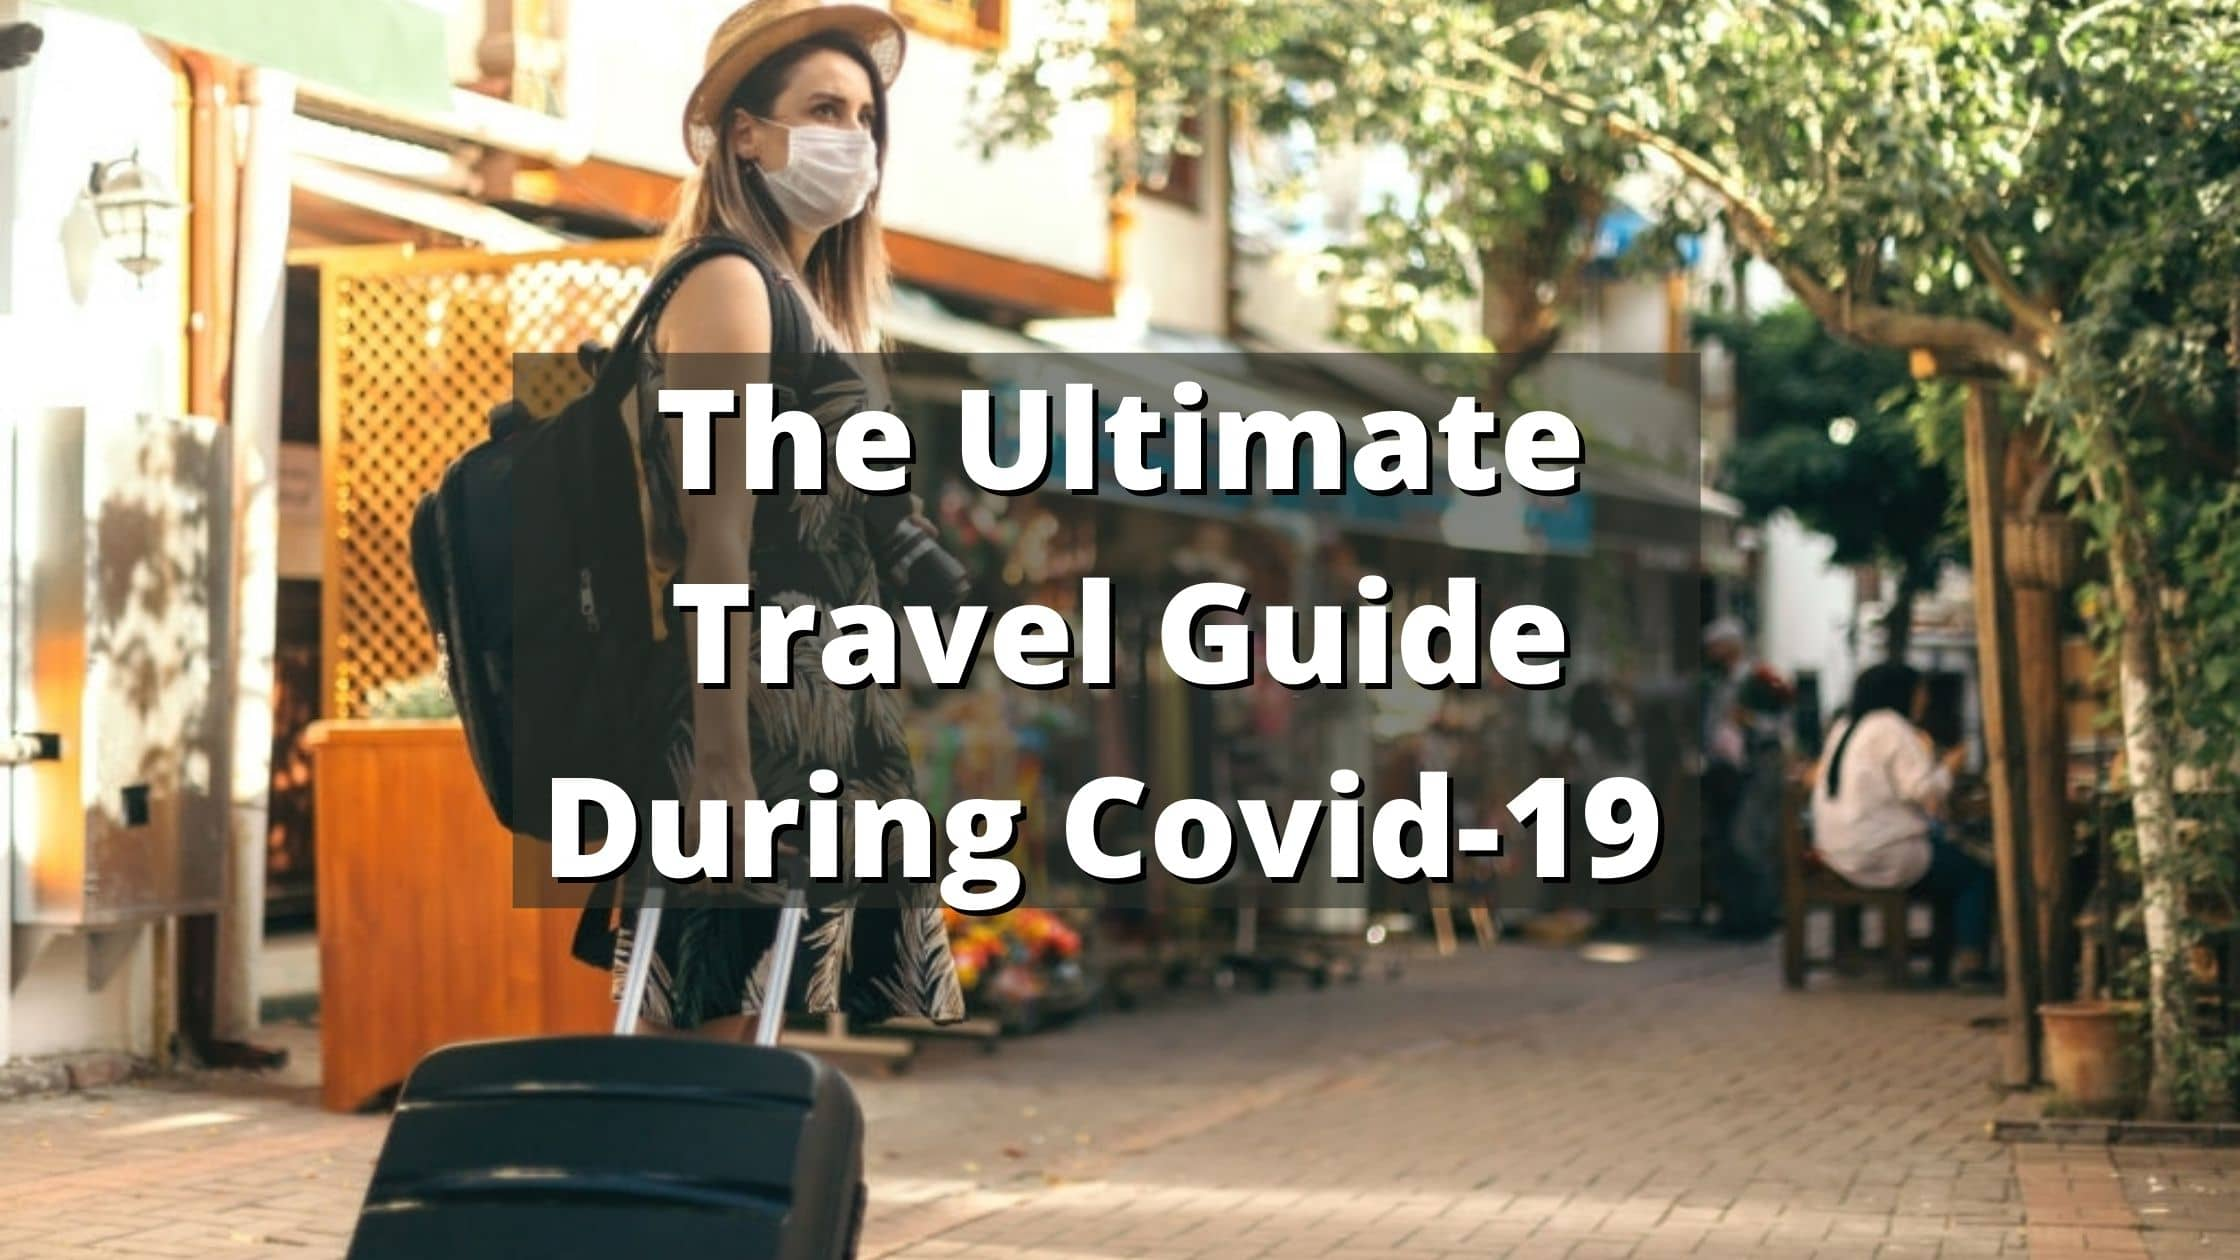 The Ultimate Travel Guide During Covid-19